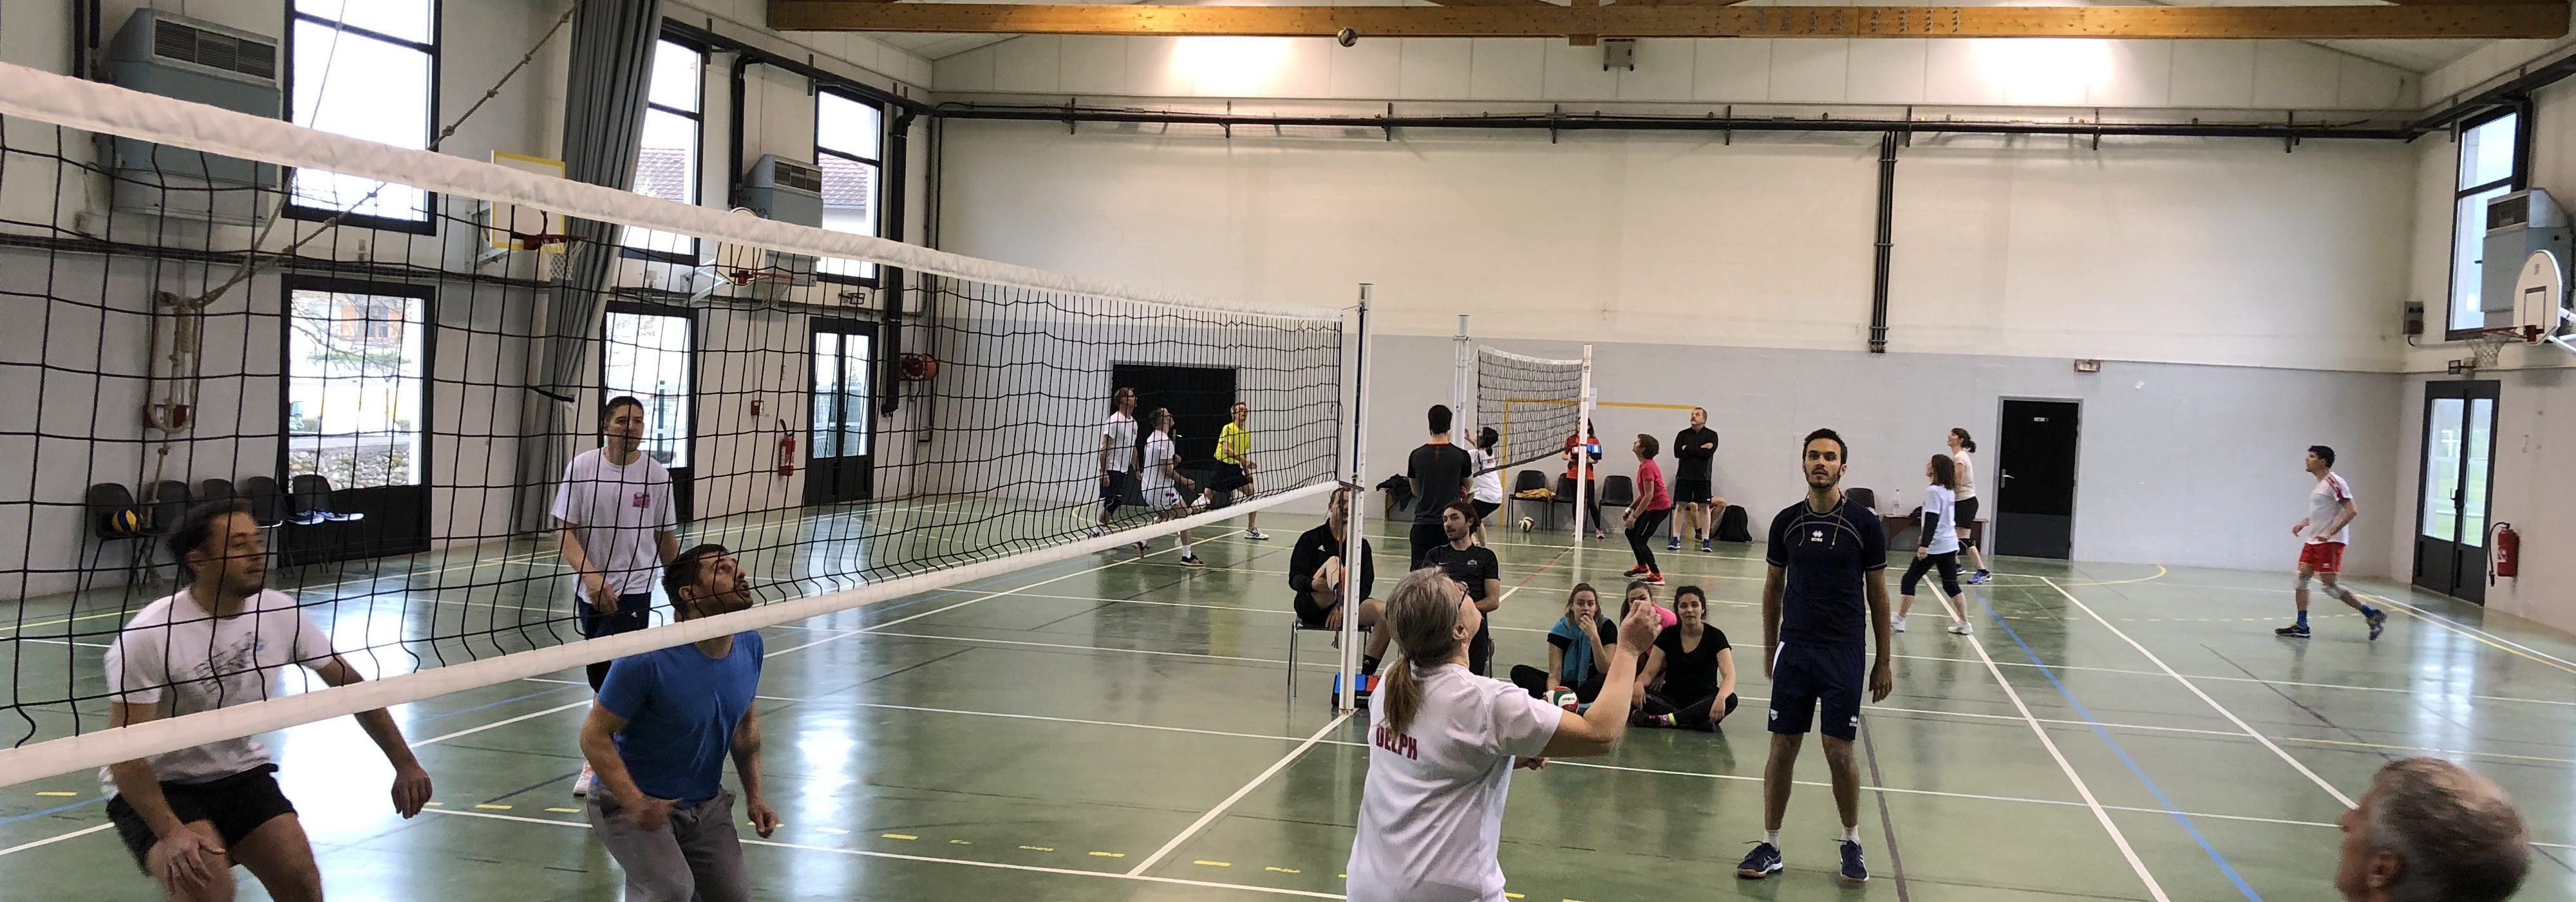 Merci VolleyVou pour ce tournoi inter-associations